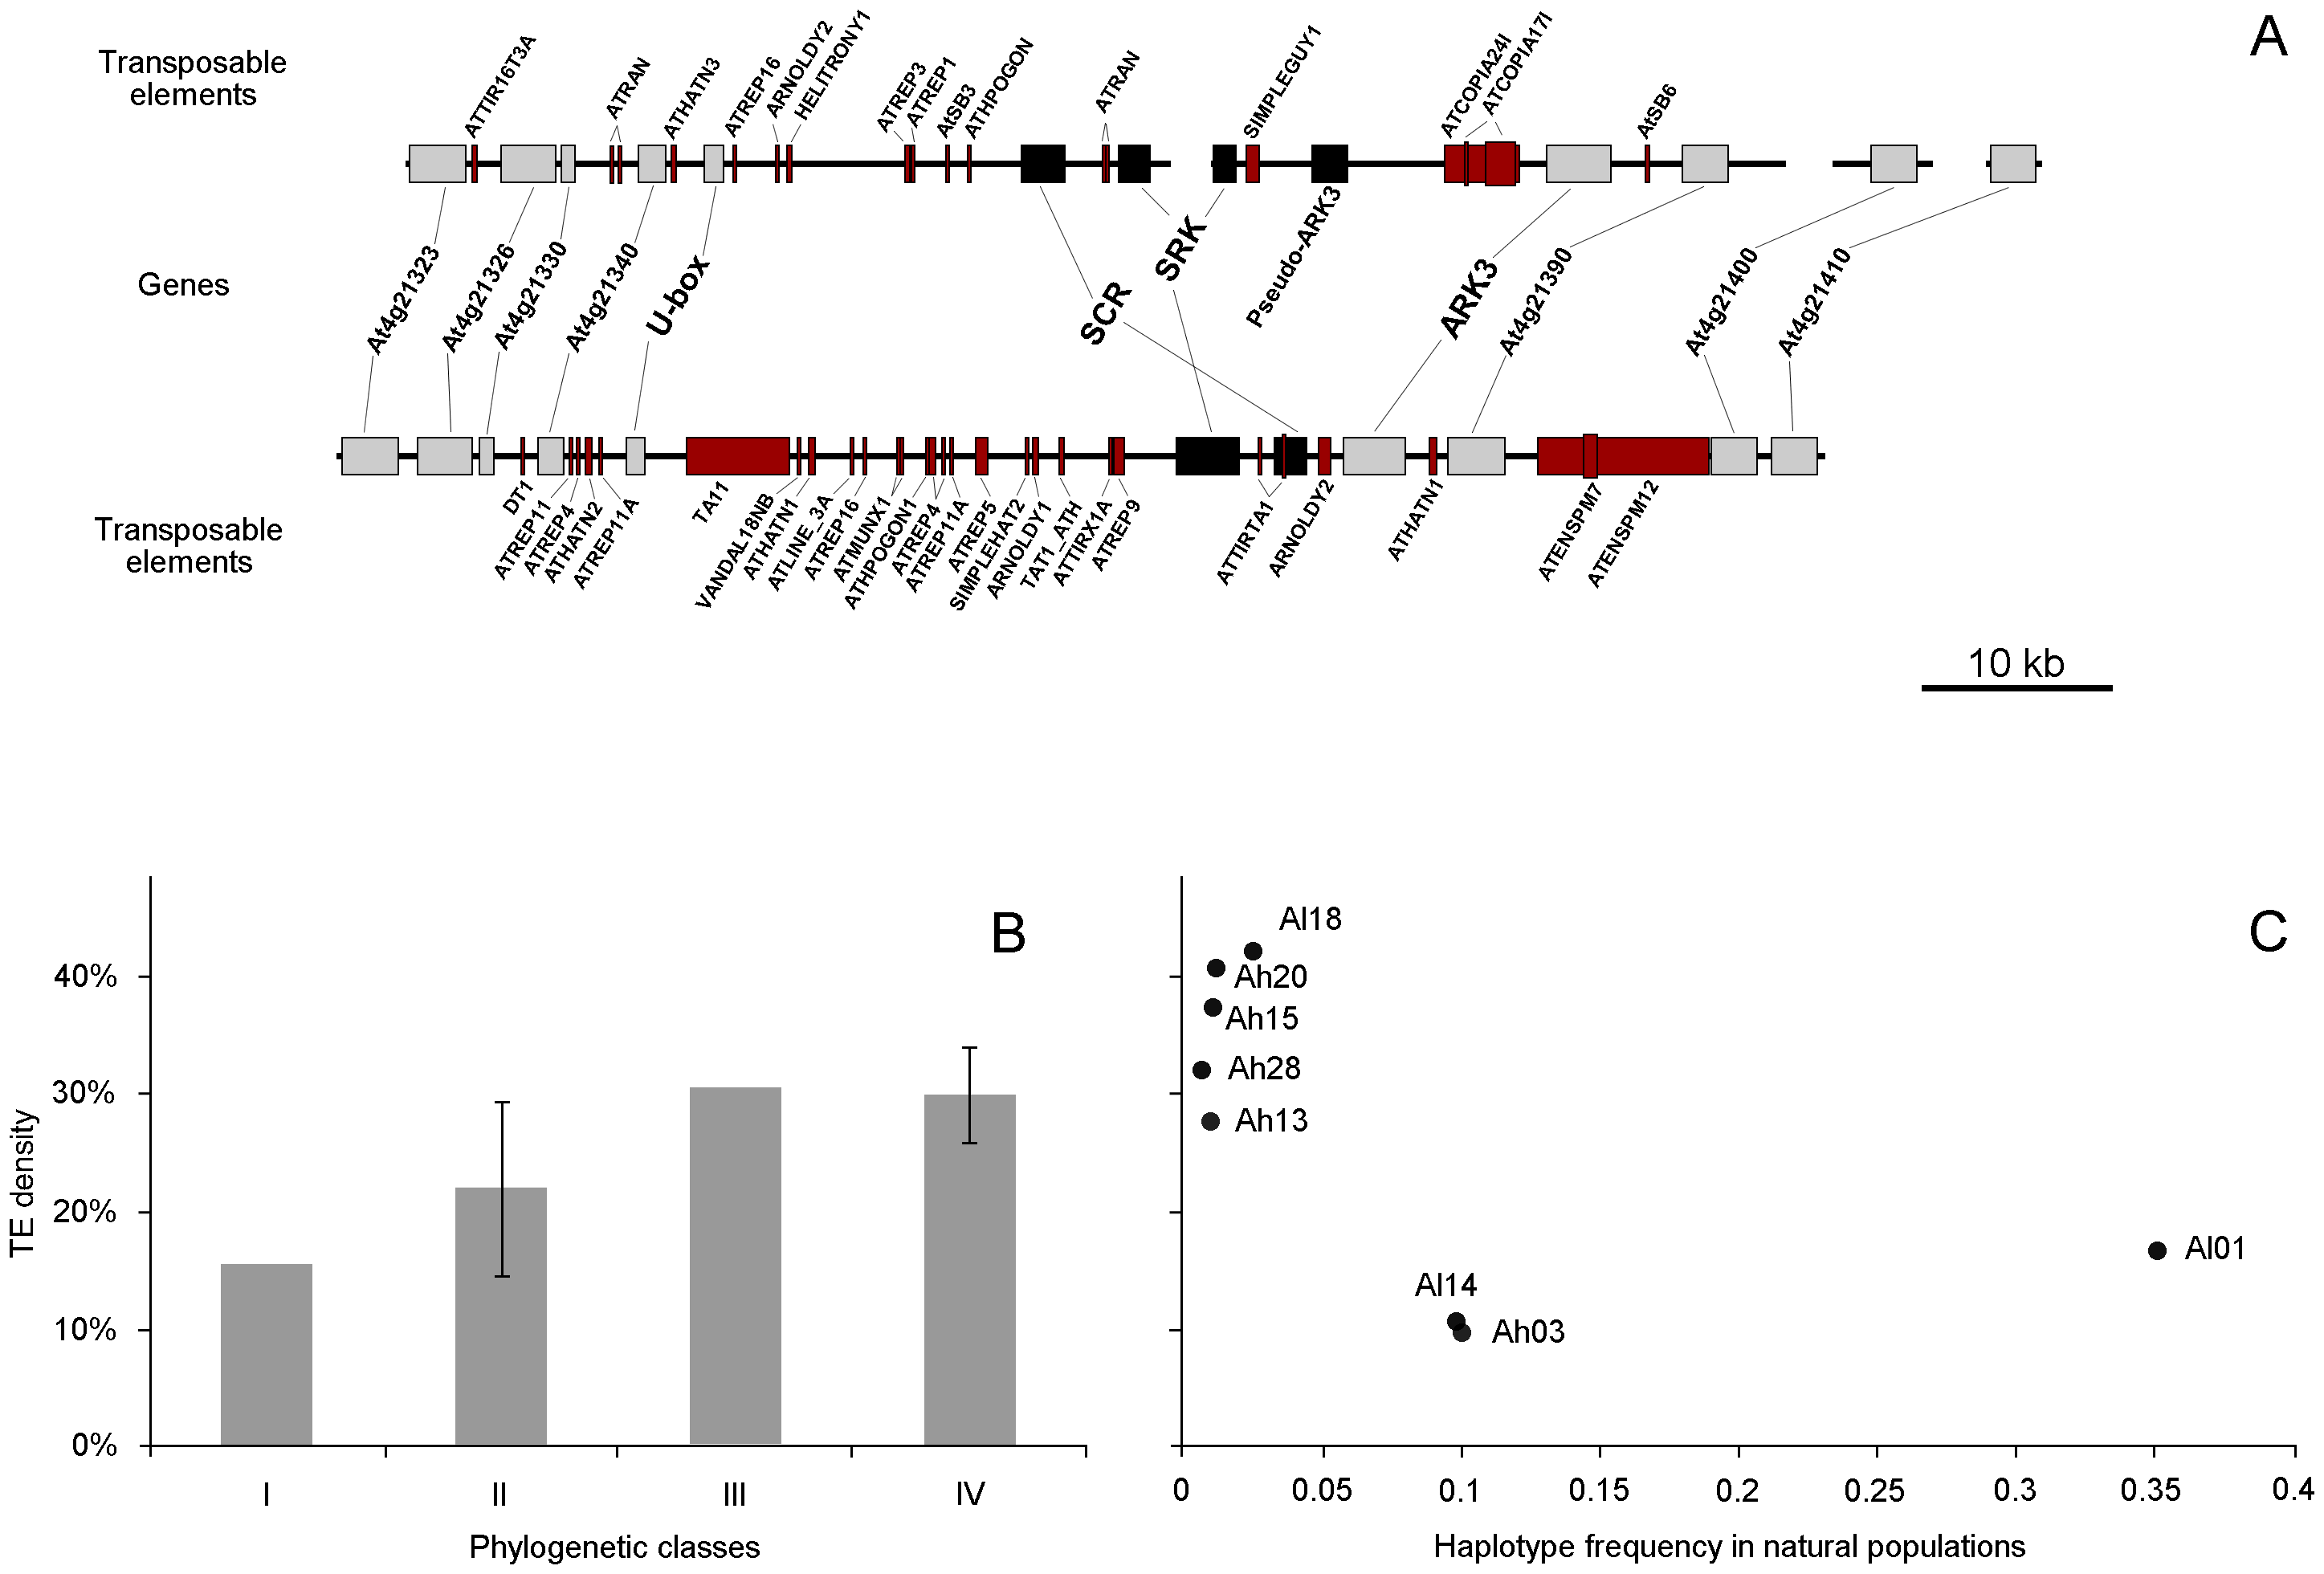 Comparative annotation of genes and transposable elements, mean TE density, and TE density according to frequency.